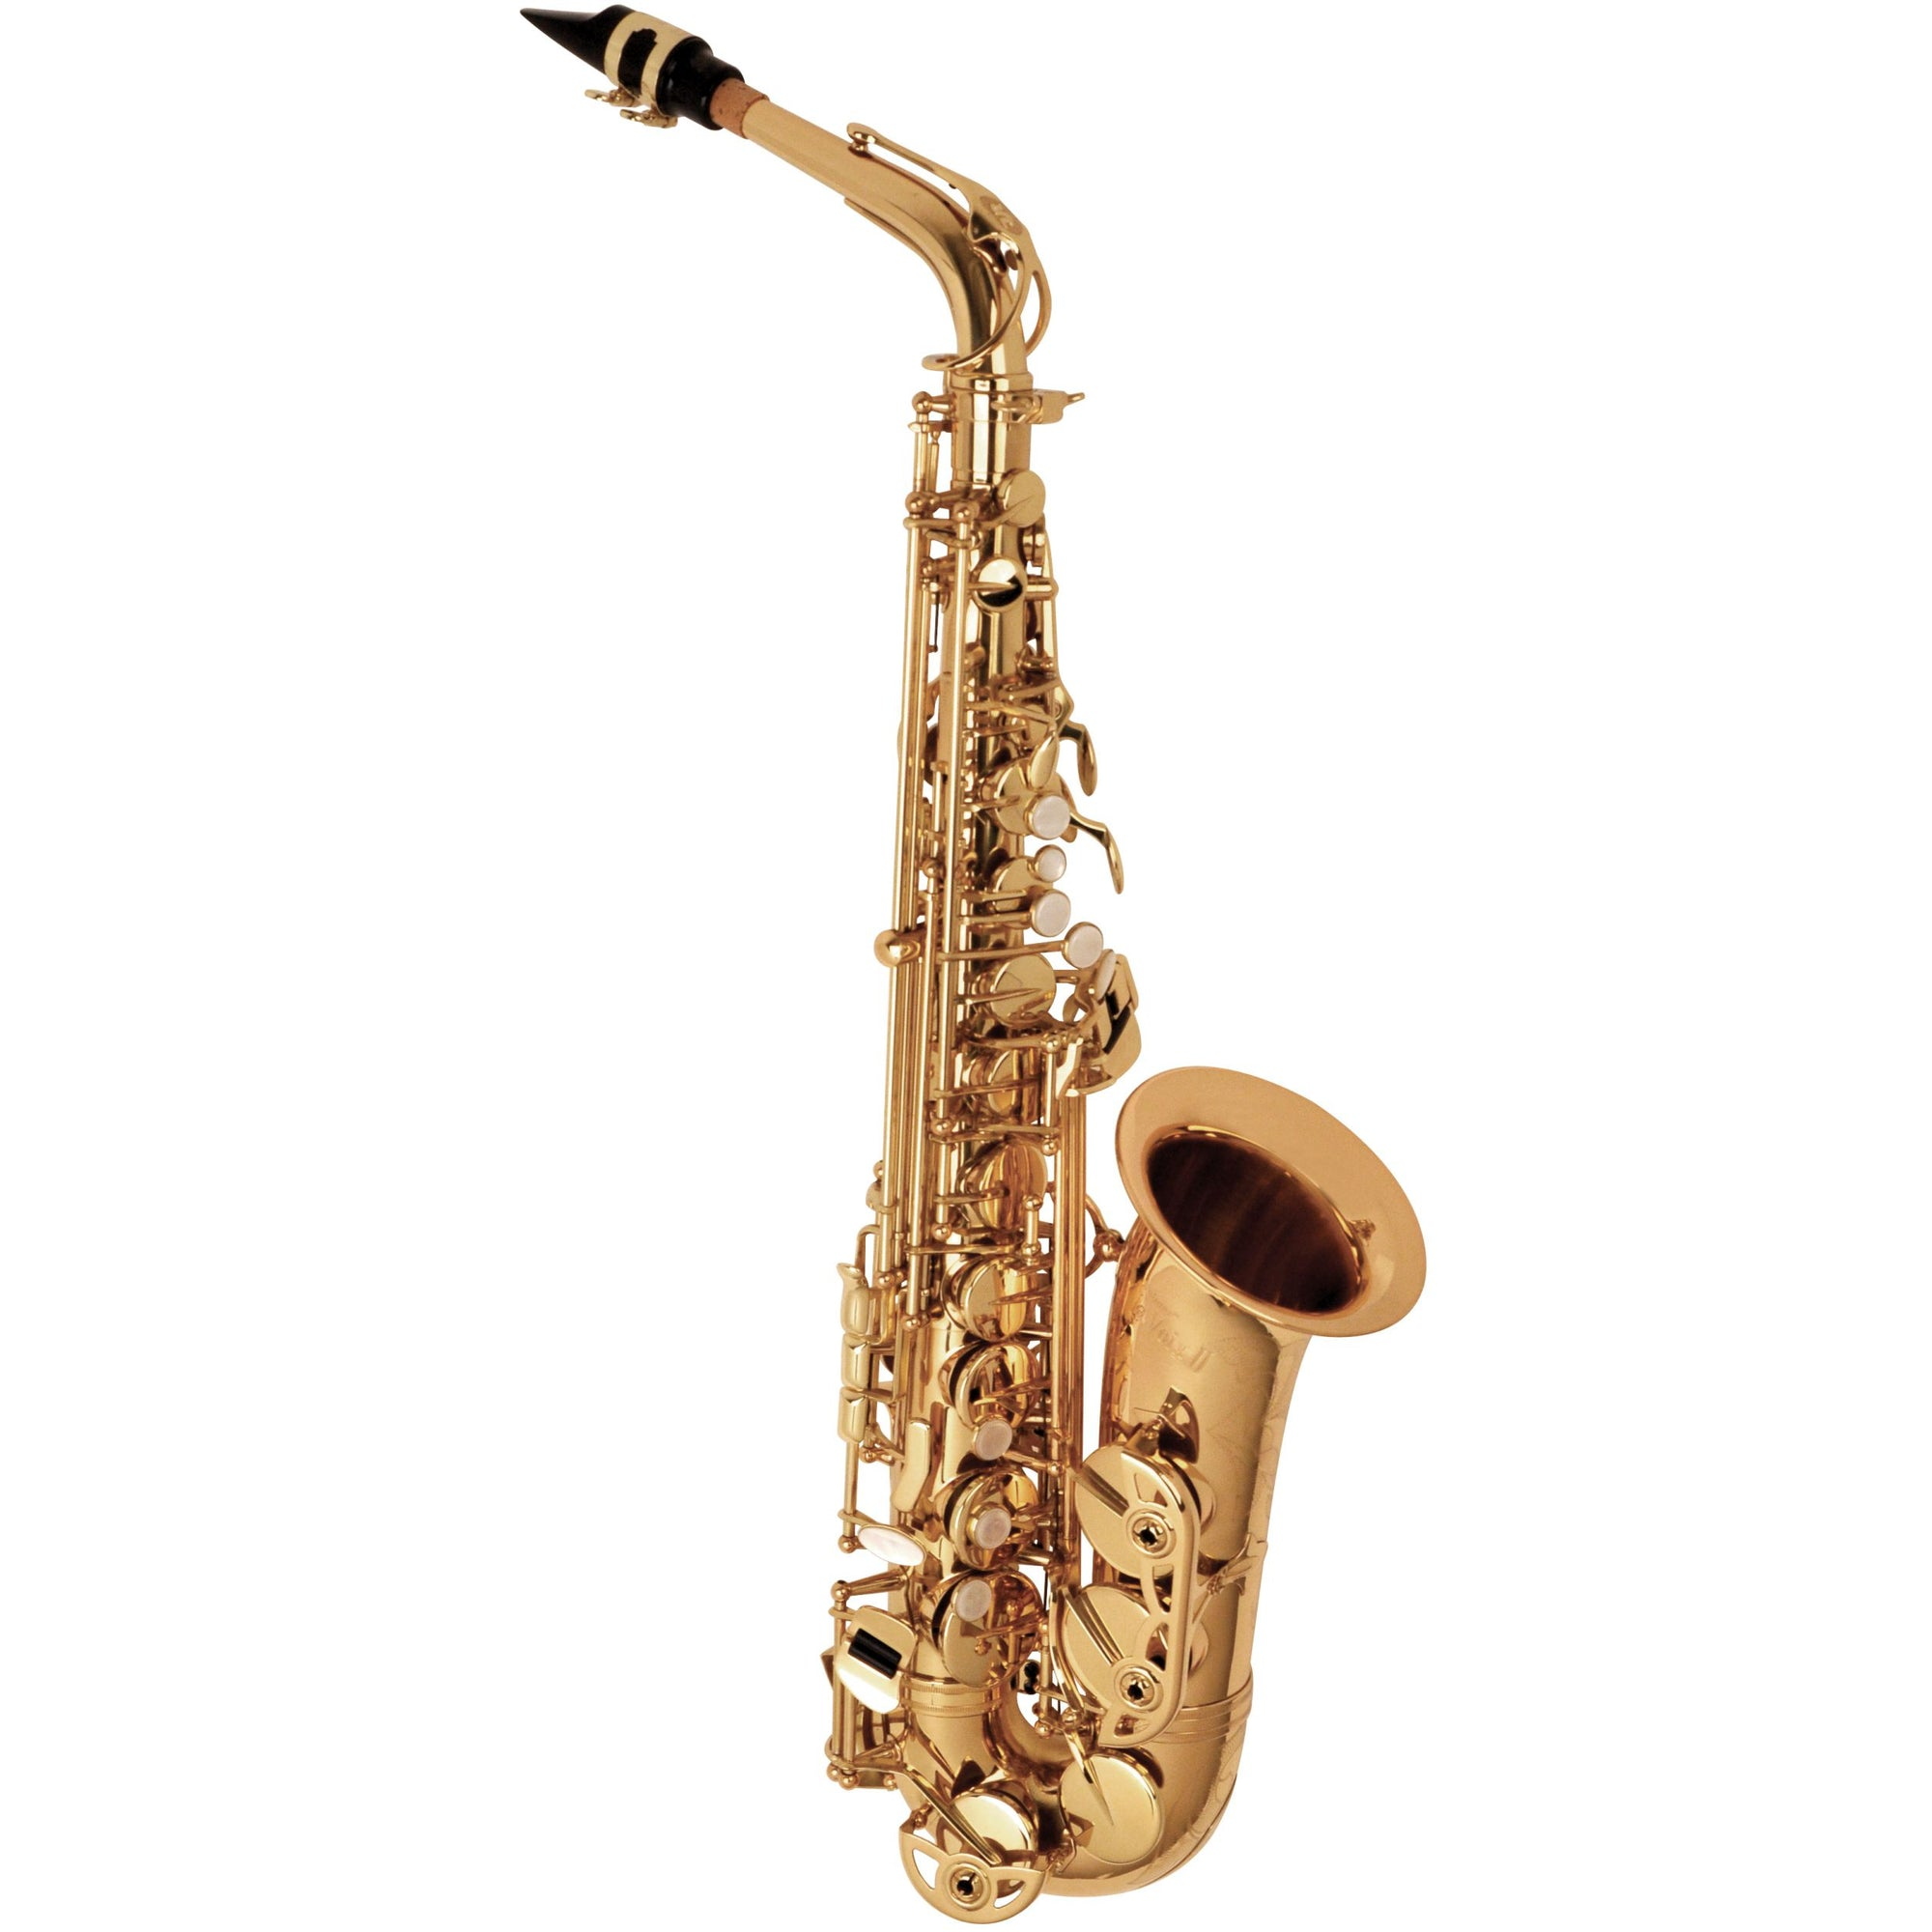 Selmer LaVoix II Alto Saxophone Outfit - Standard